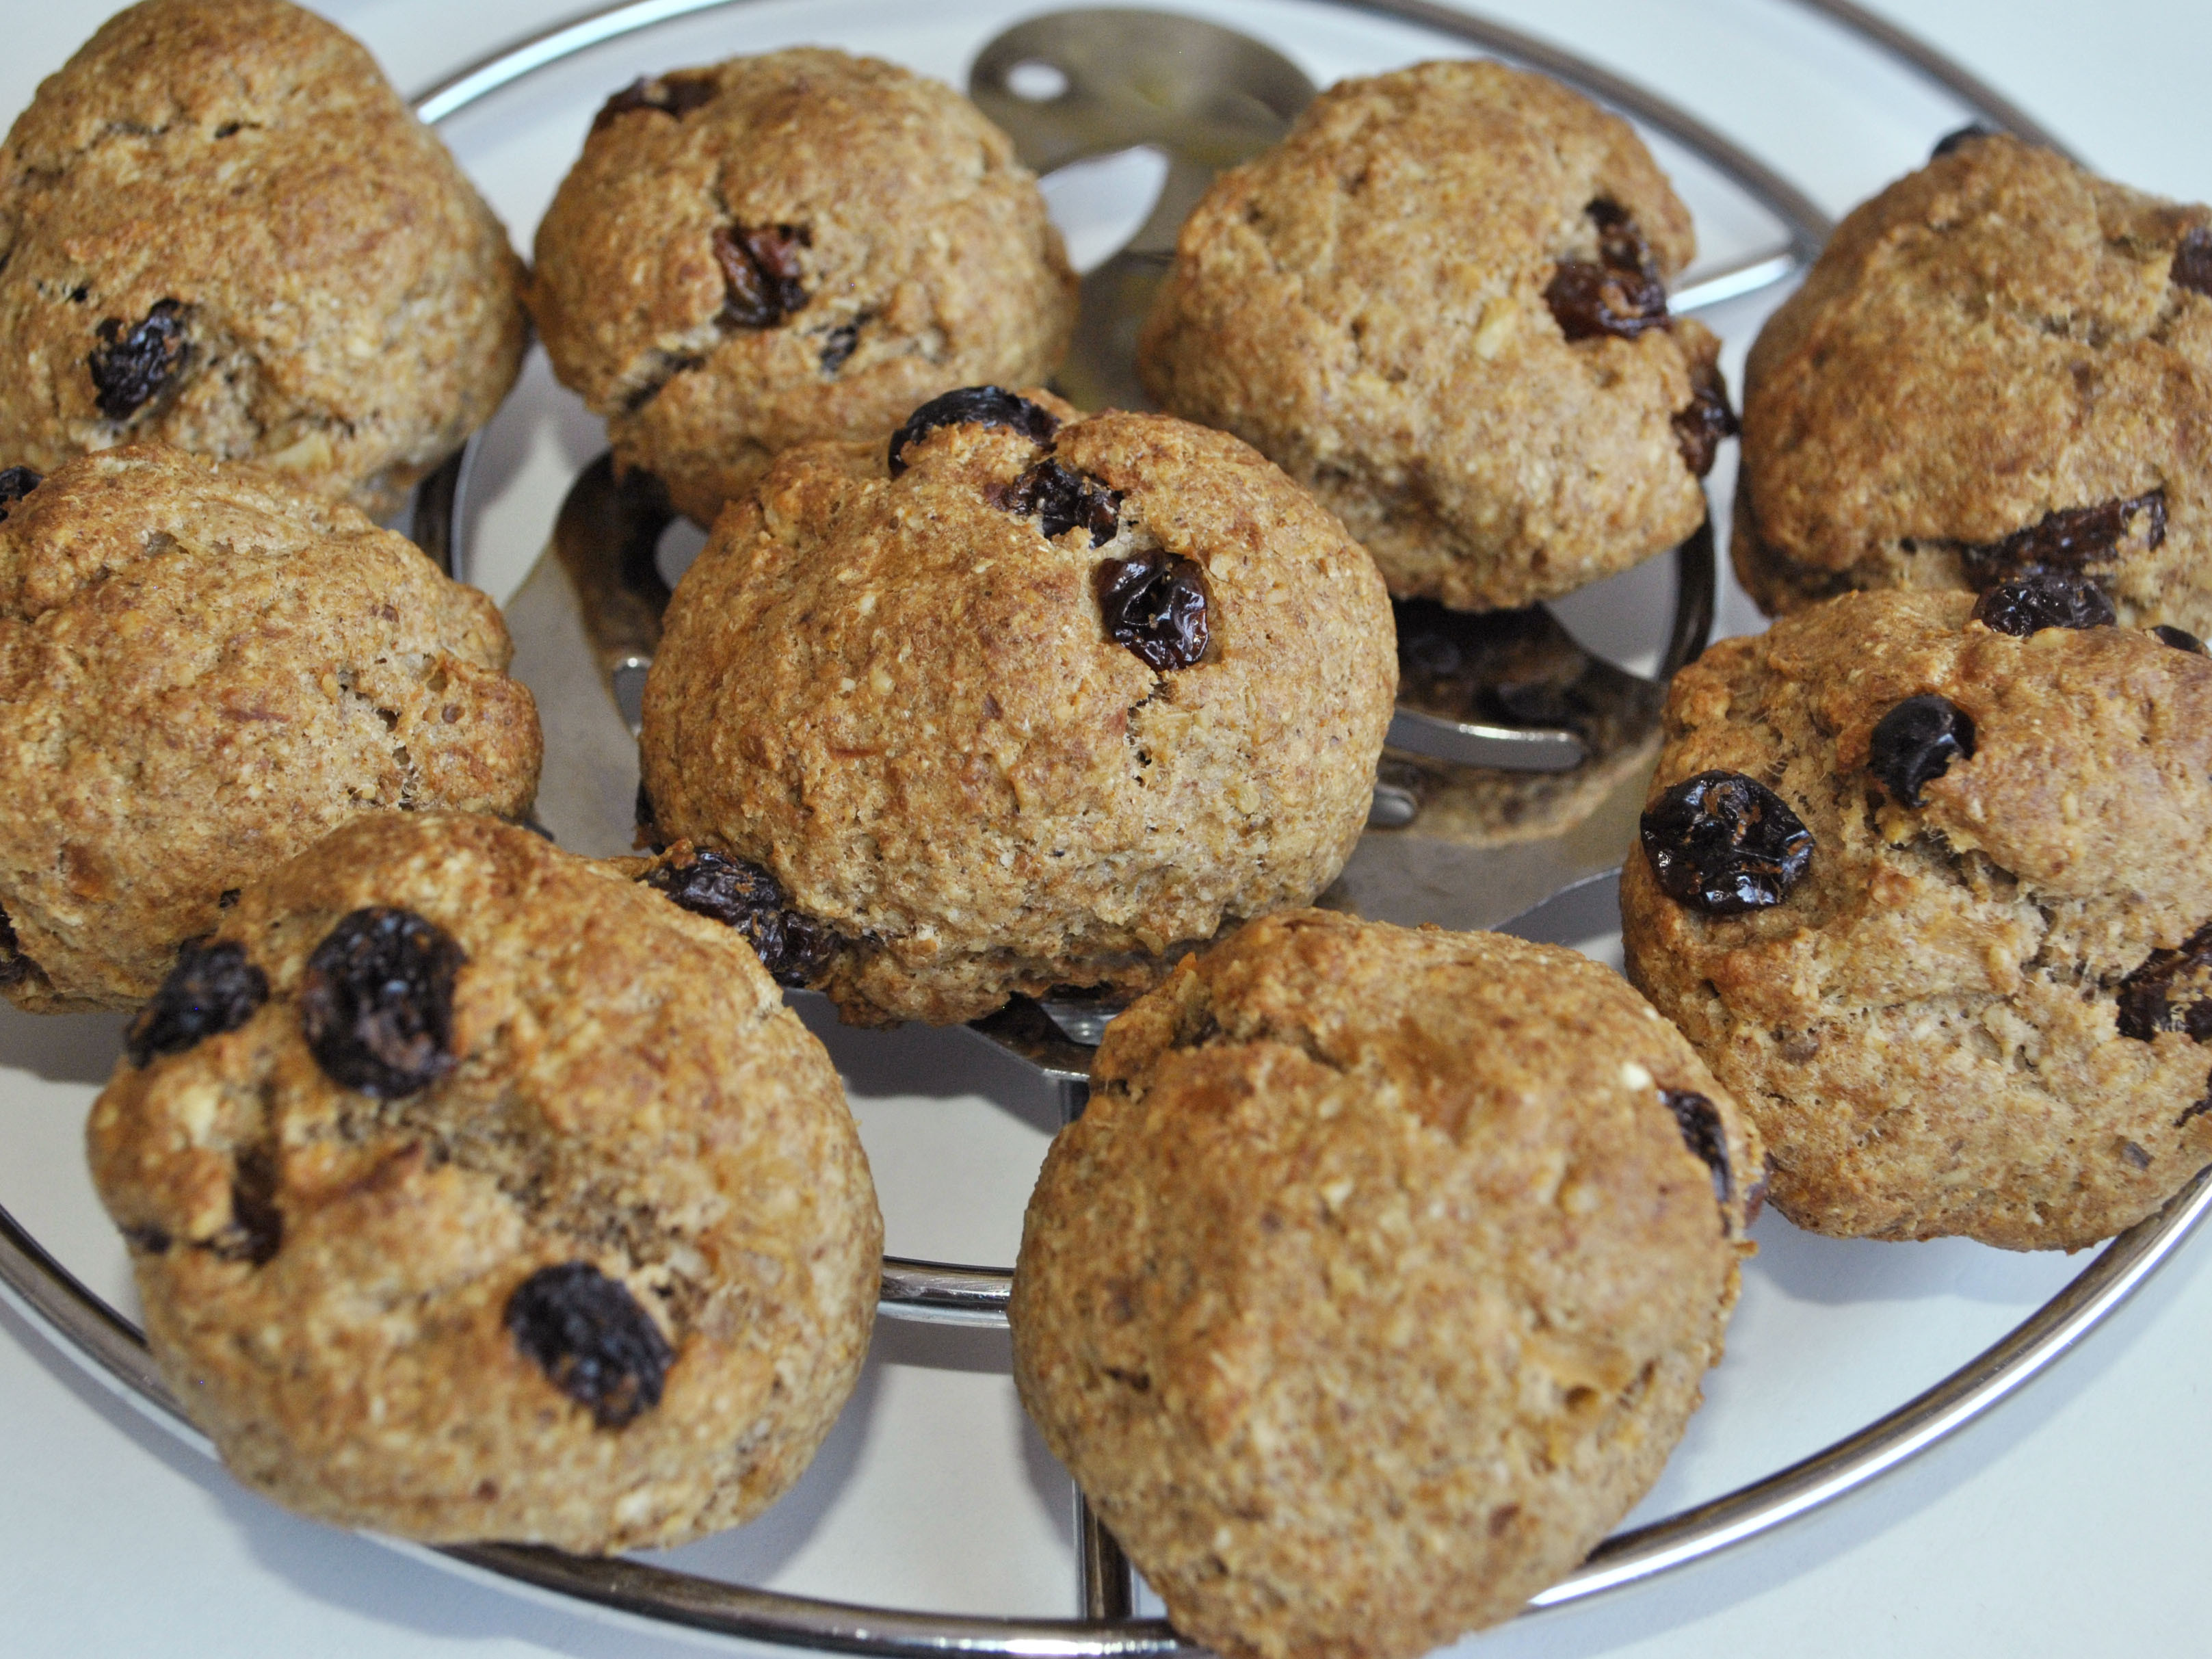 Healthy Oatmeal Chocolate Chip Cookies  How to Make Healthy Oatmeal Chocolate Chip Cookies 10 Steps